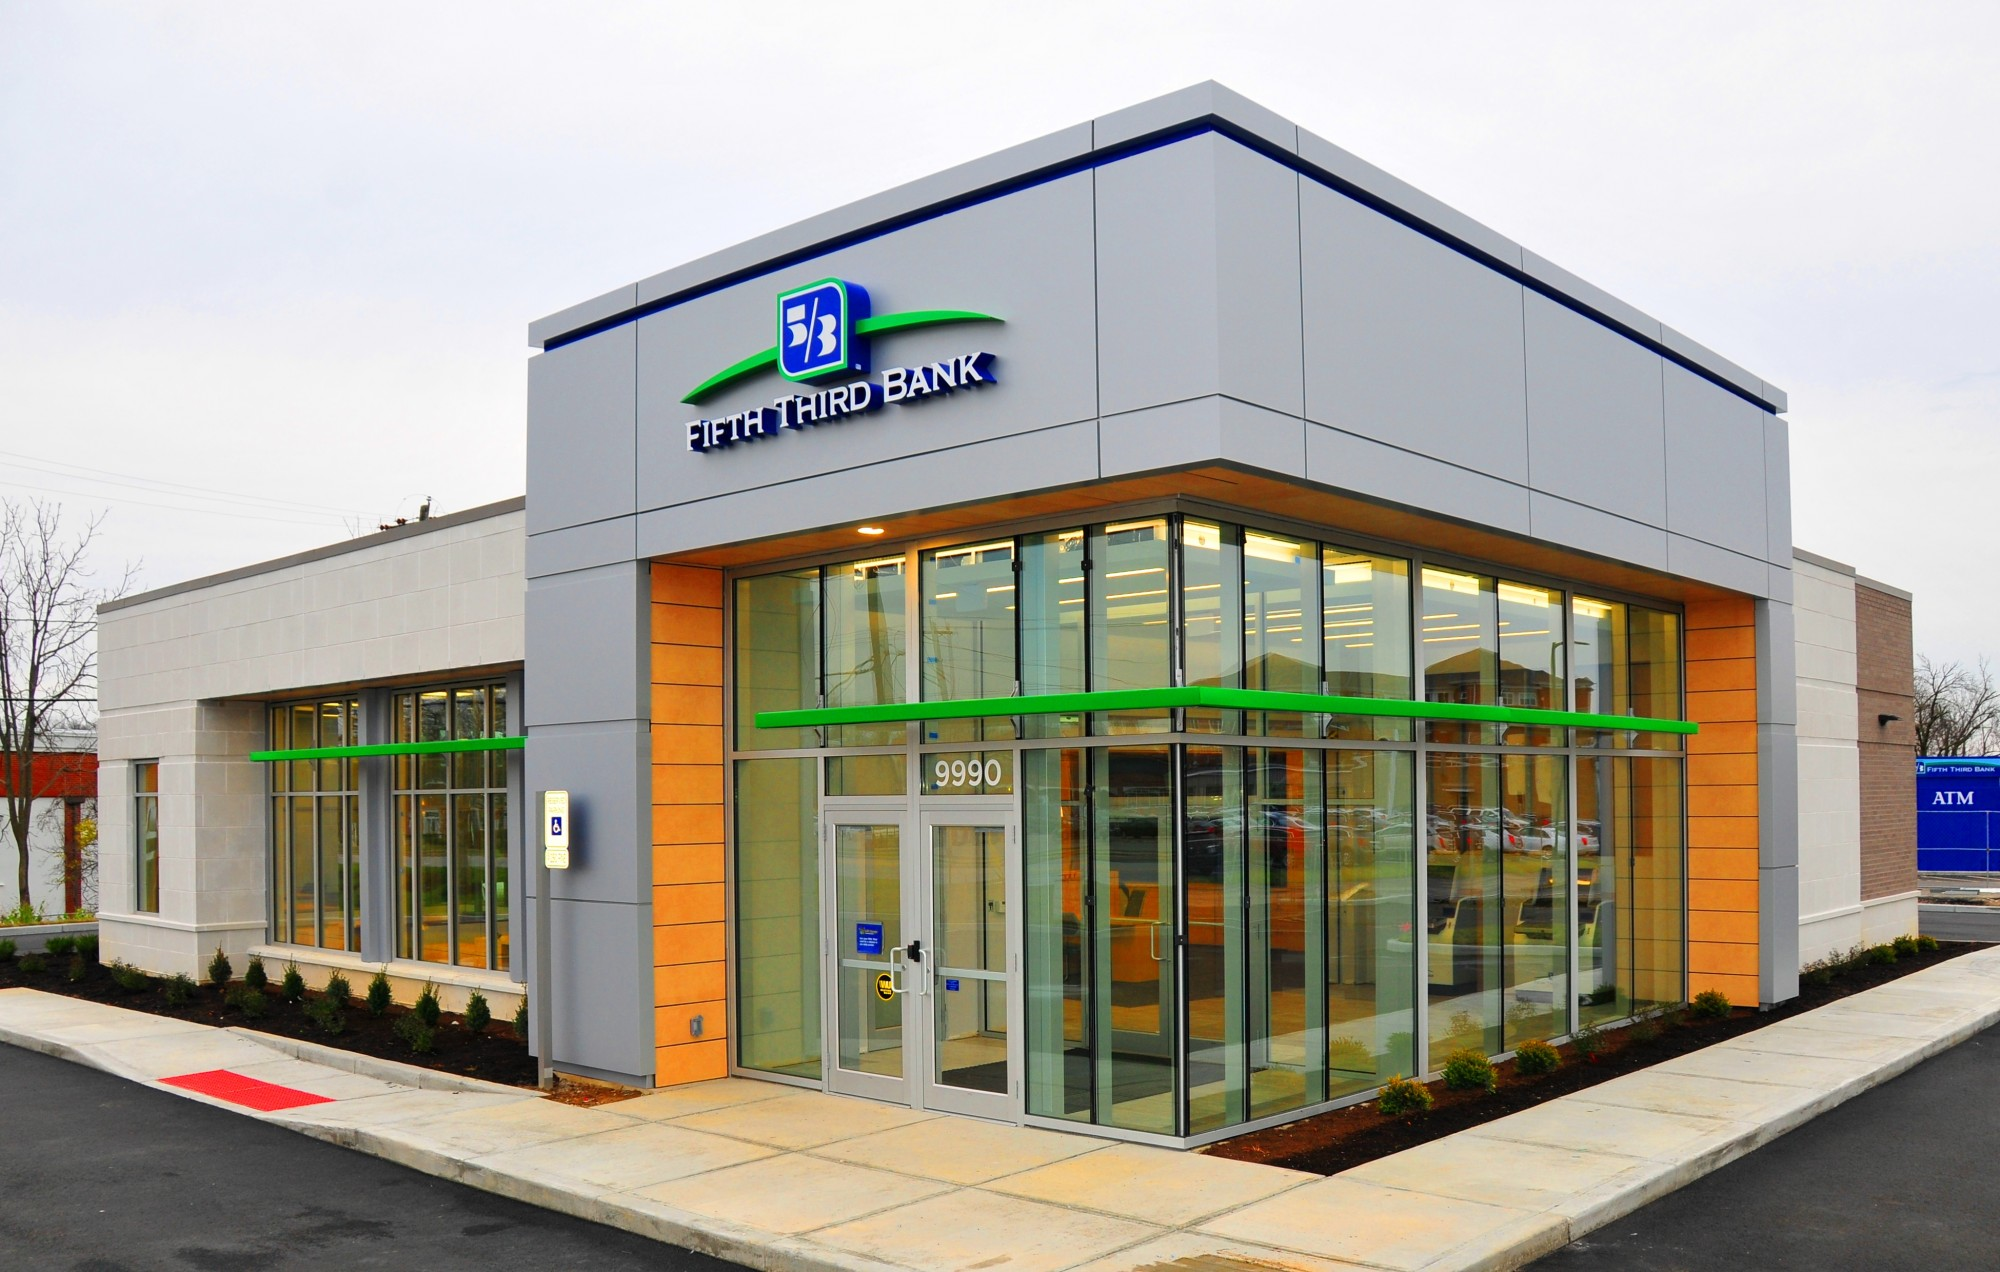 Fifth Third Bank Cincinnati Oh Ccs Image Group